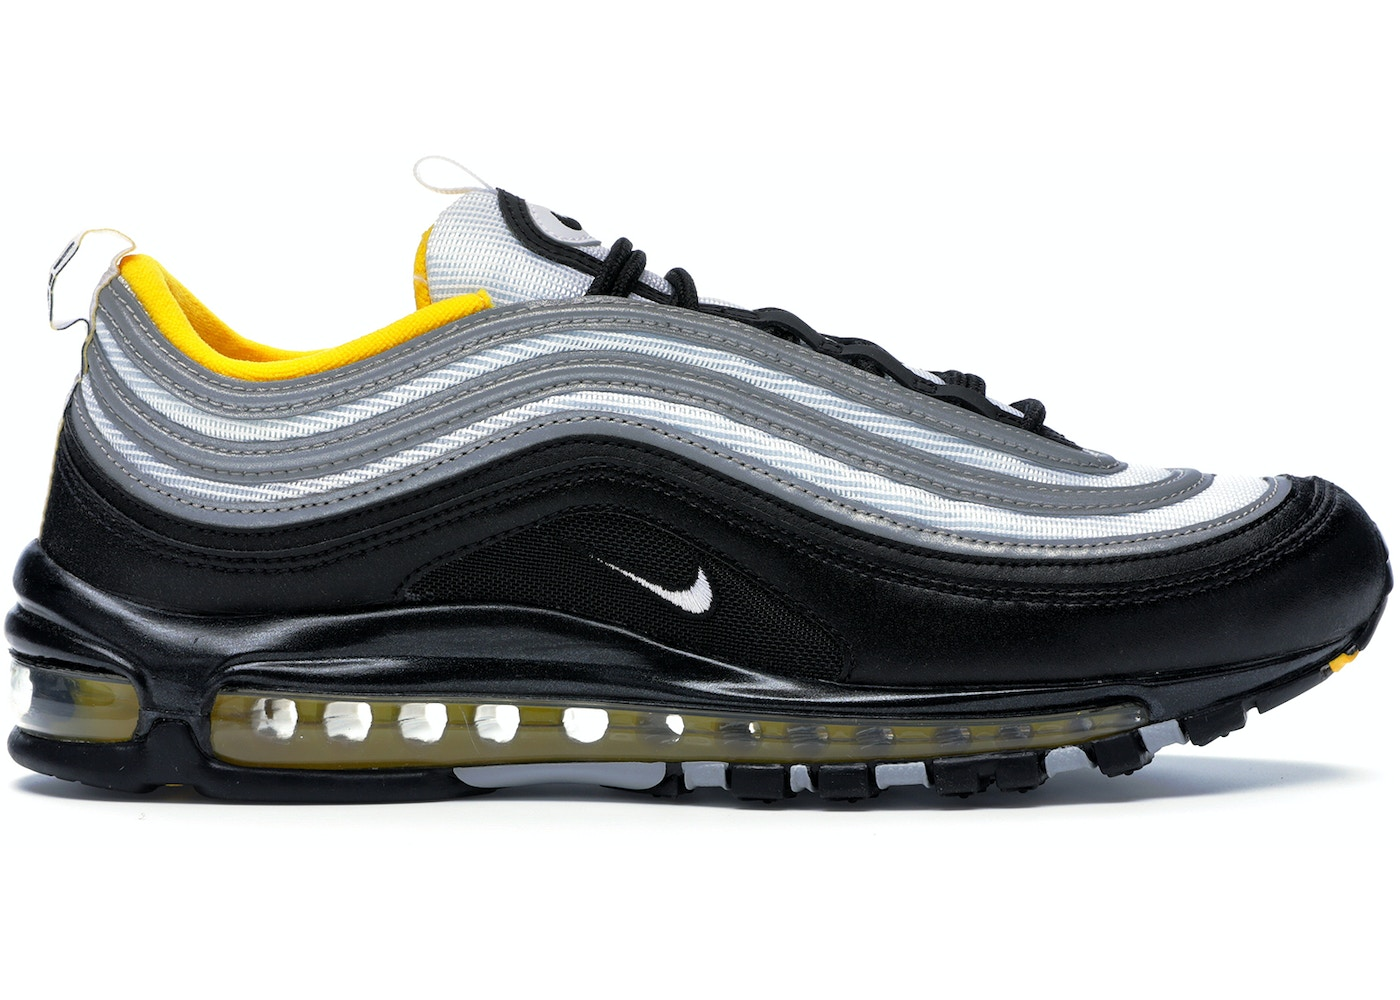 detailed look 5e696 d26eb Air Max 97 Steelers (2018)